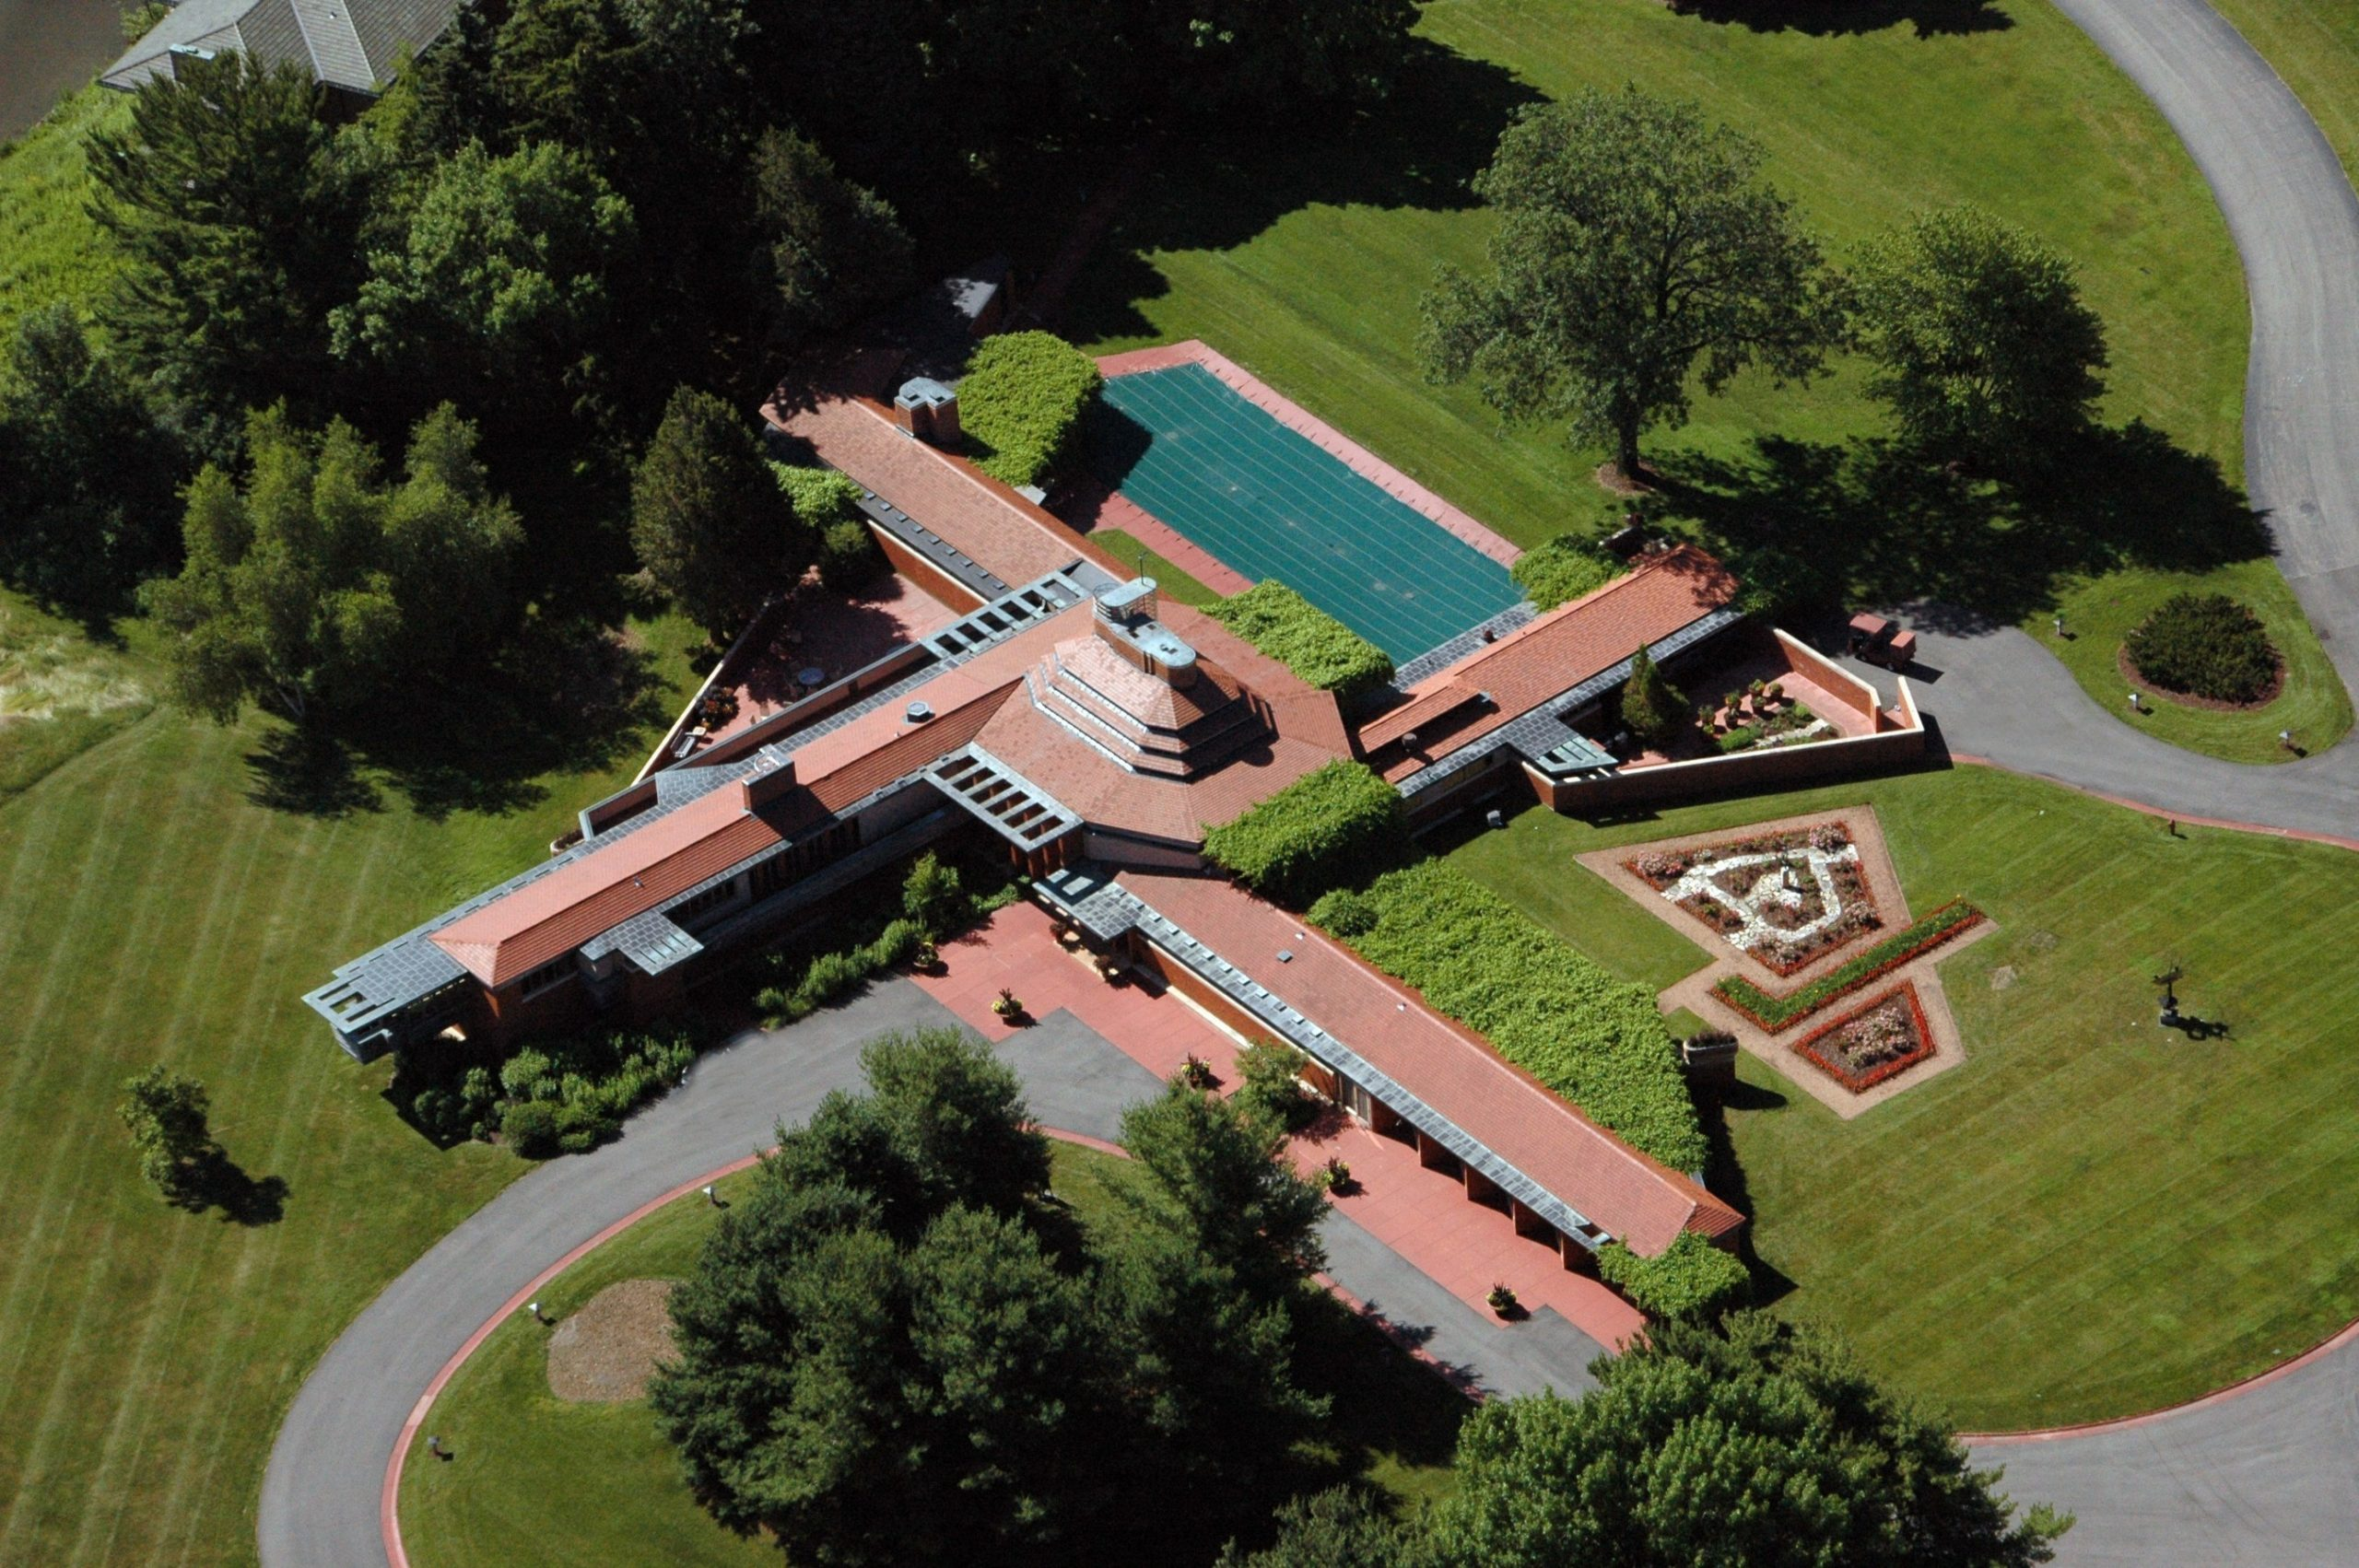 Wingspread, the house Wright designed for Herbert Fisk Johnson Jr., has four distinct wings zoned by function and built around an octagonal domed living room.